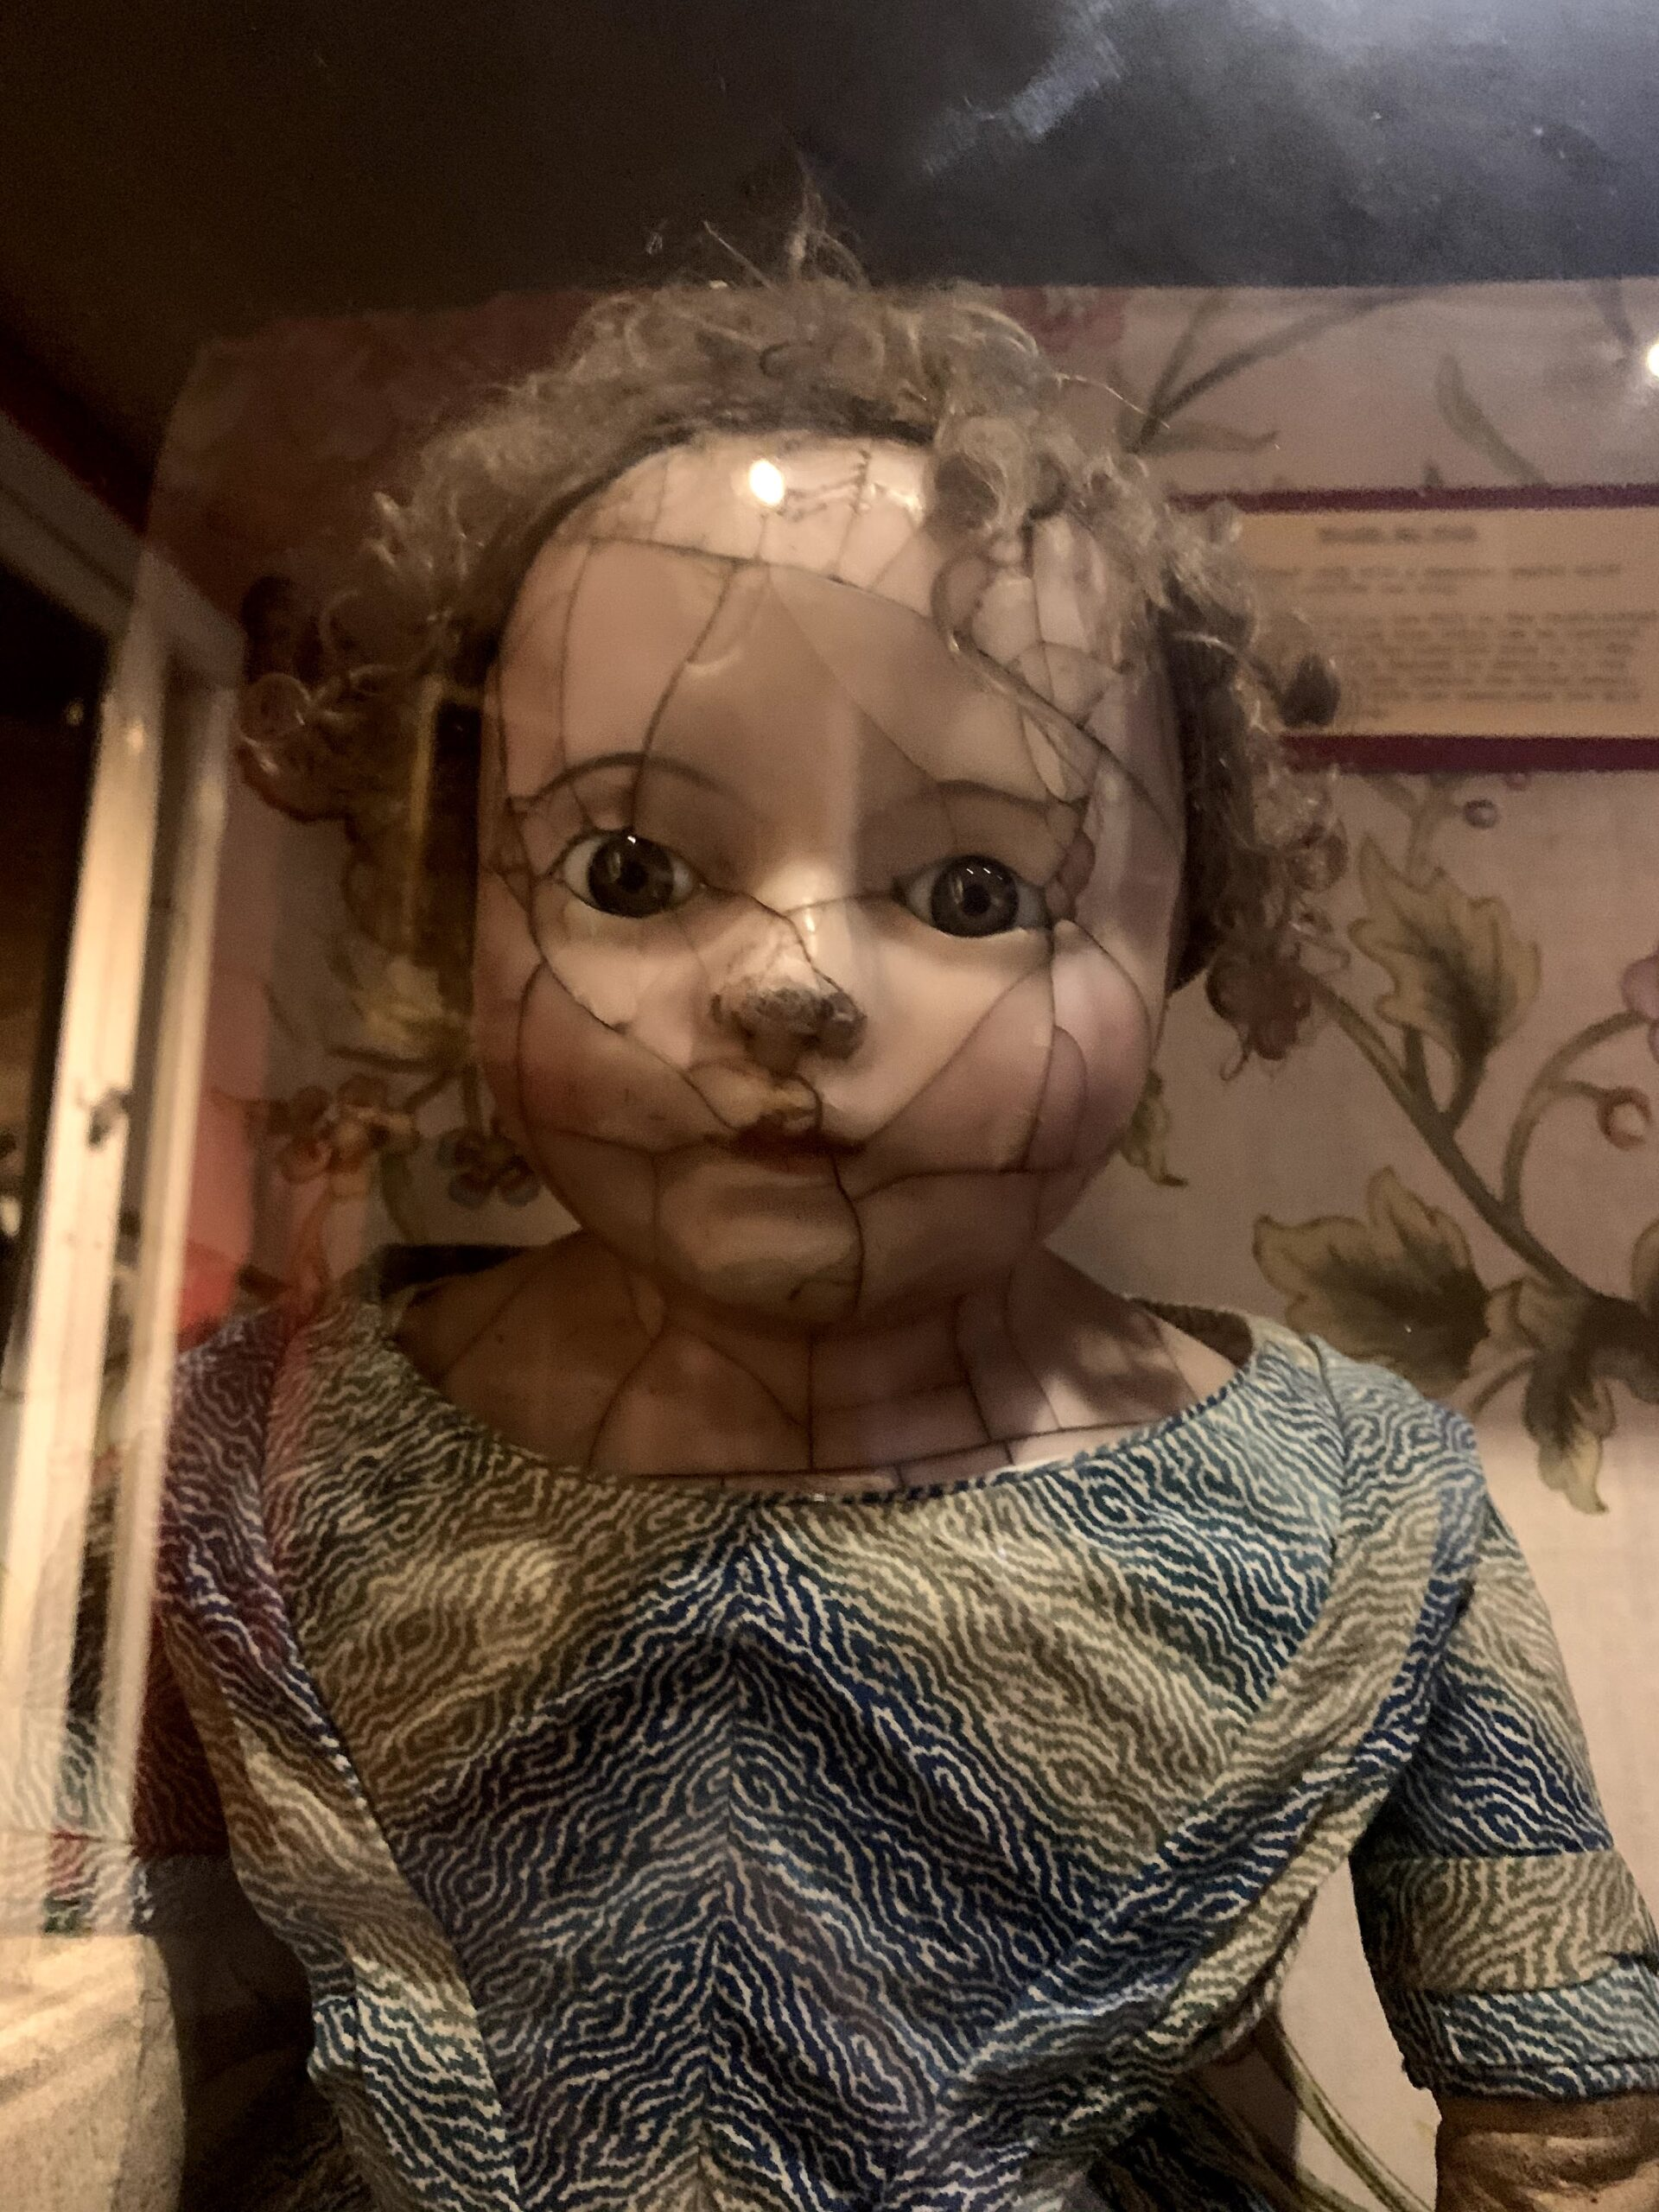 Afraid of Dolls? Then this place is not for you!